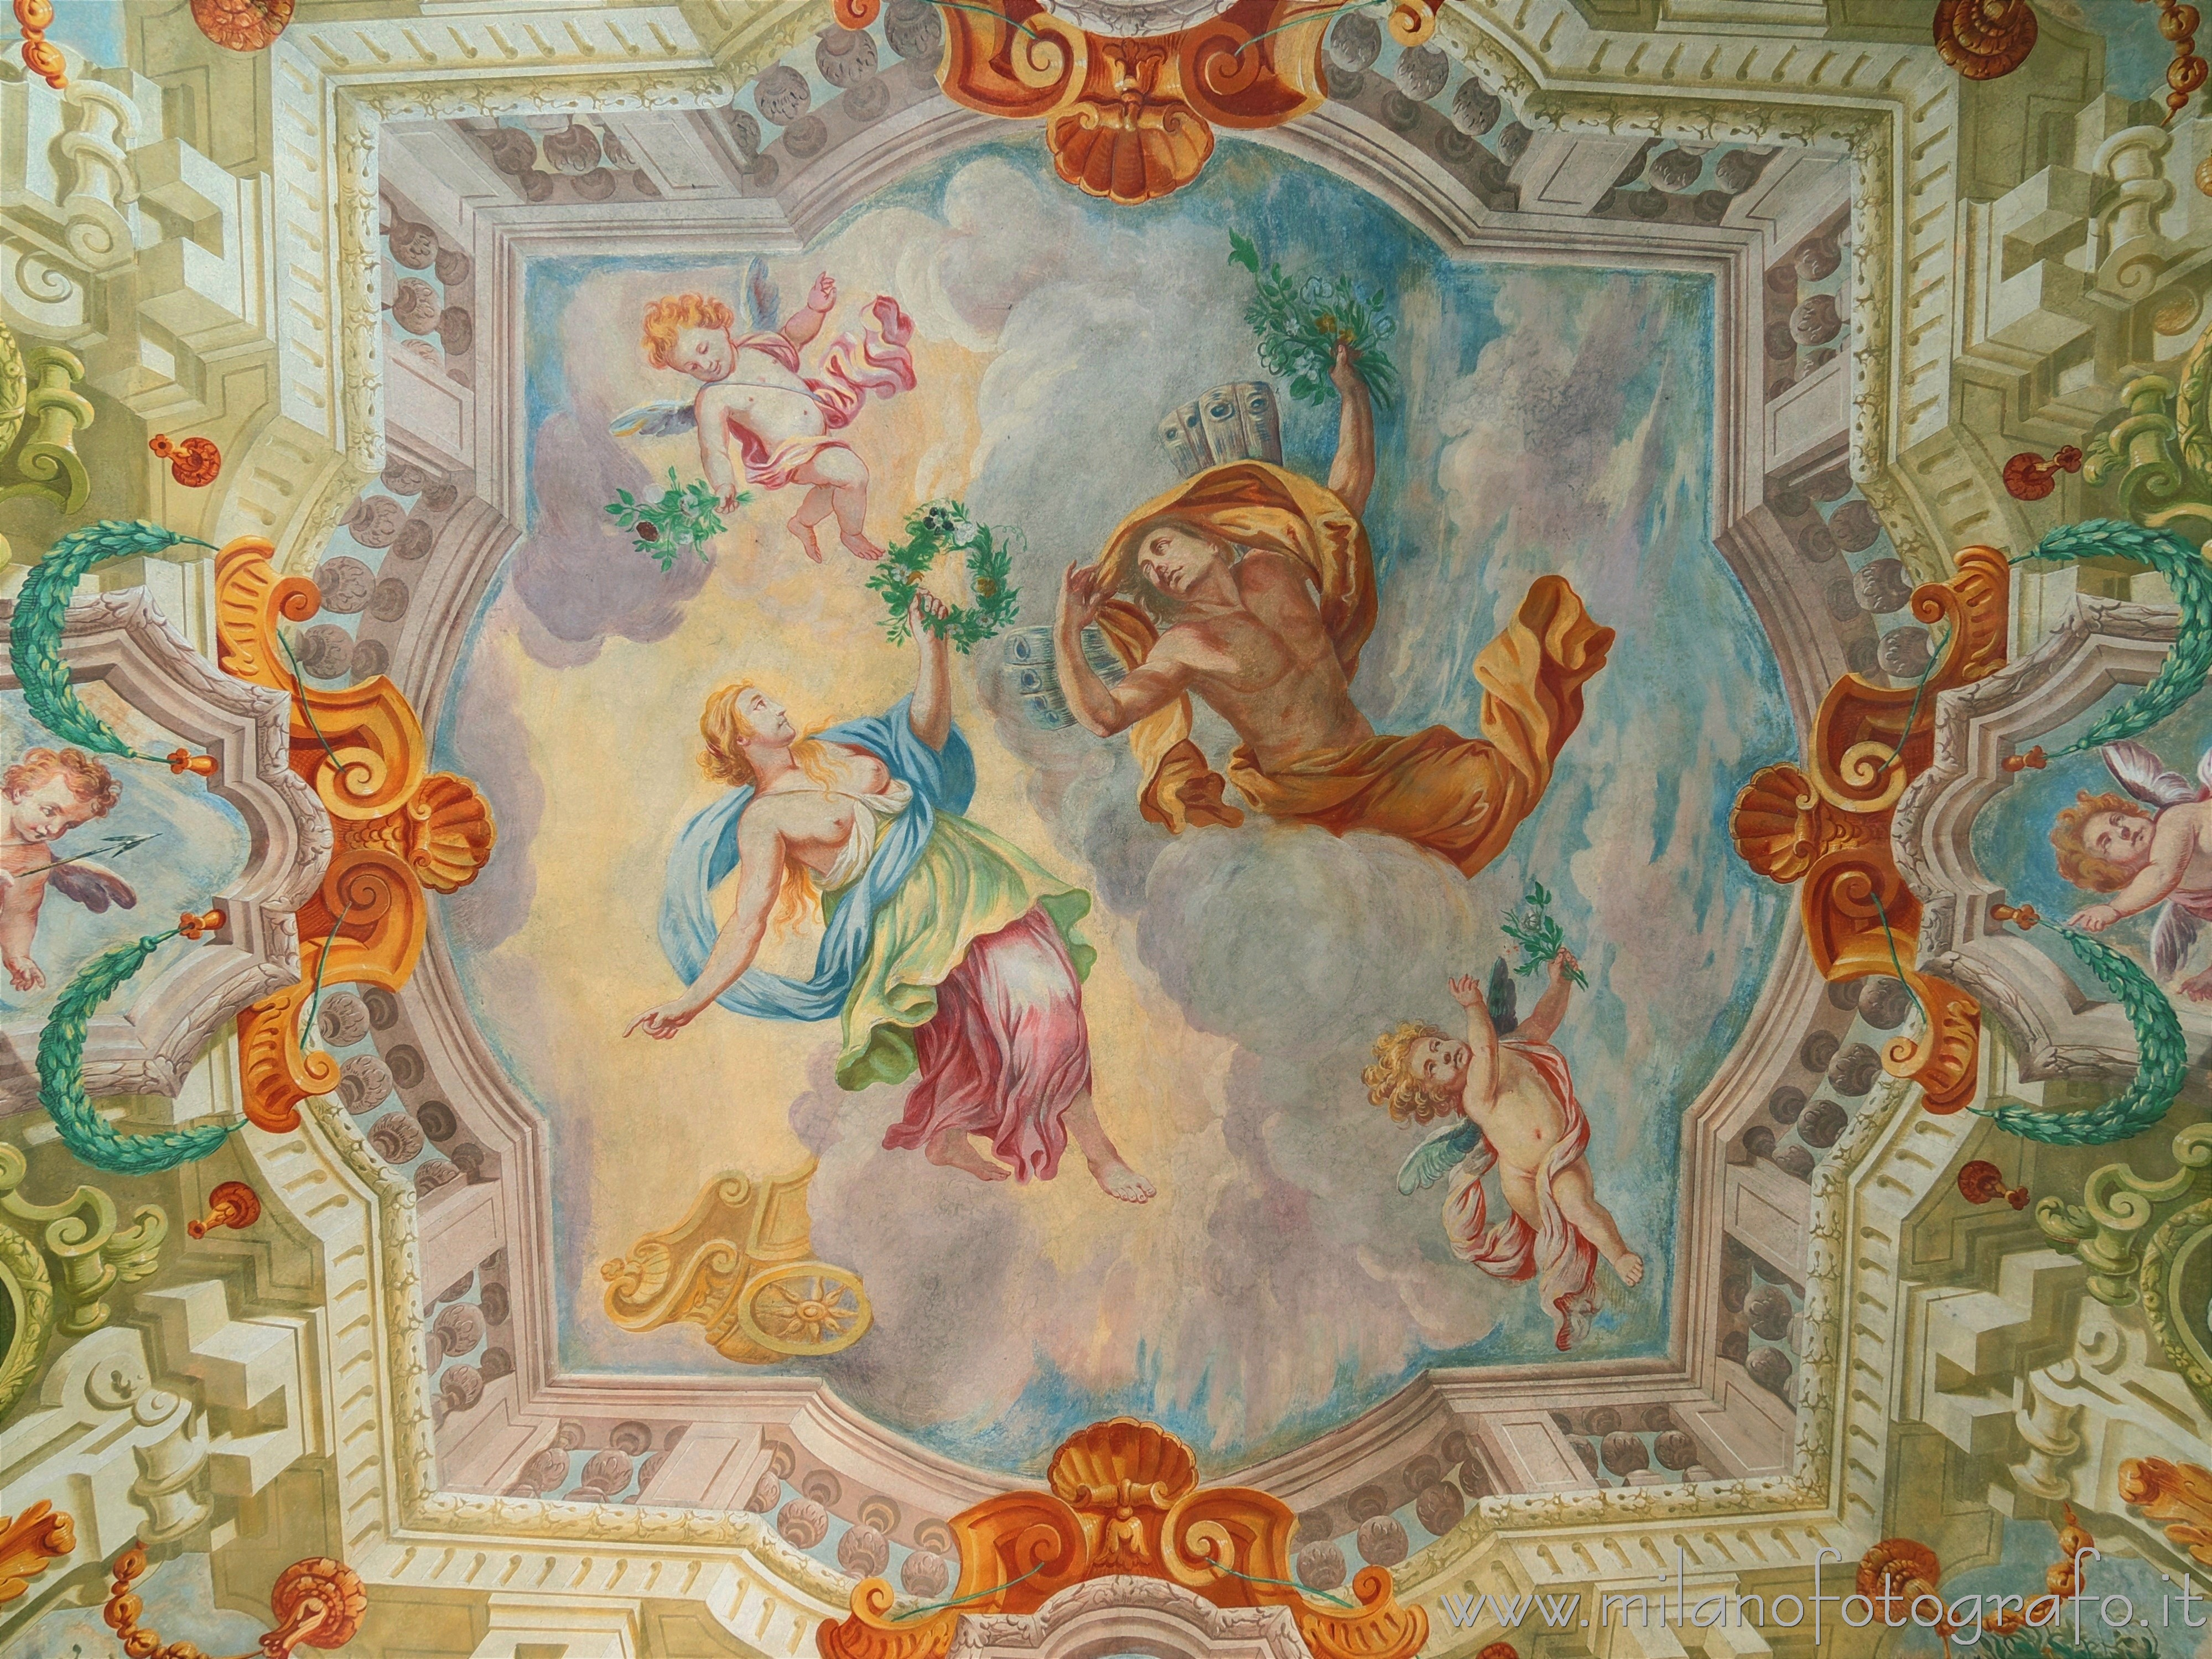 Cavernago (Bergamo, Italy): Trompe l'oeil on the ceiling of one of the rooms of the Castle of Cavernago - Cavernago (Bergamo, Italy)